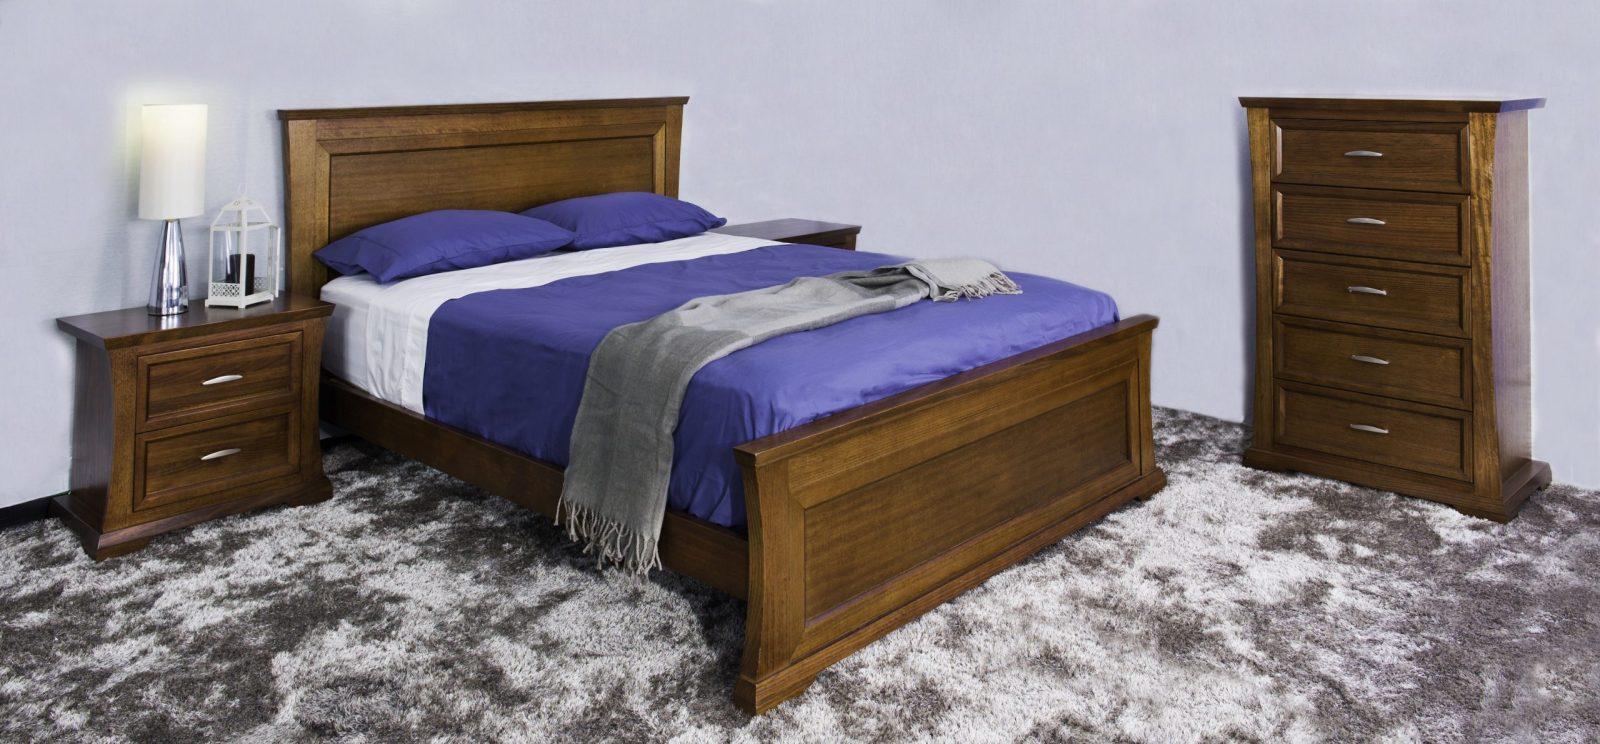 Milano Bed Frame